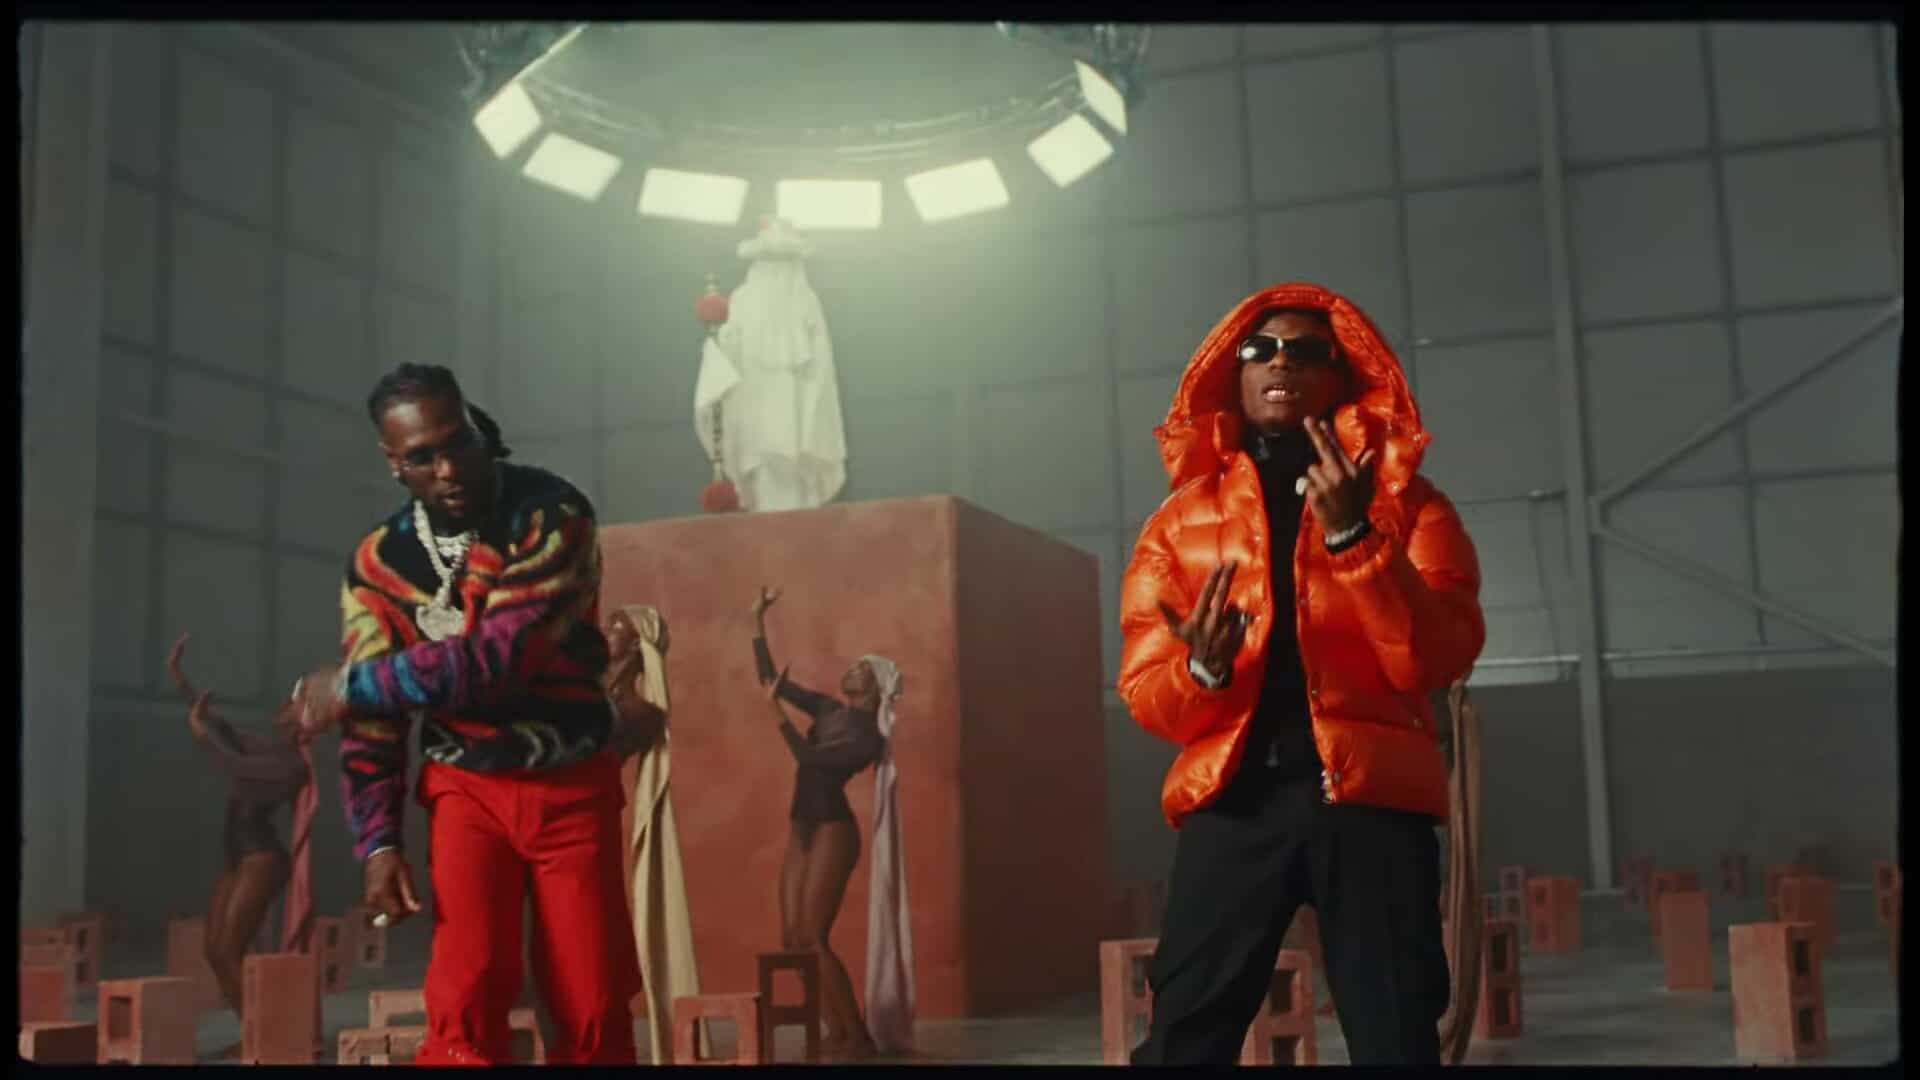 BET Awards 2021: Wizkid and Burna Boy nominated. See all nominees here